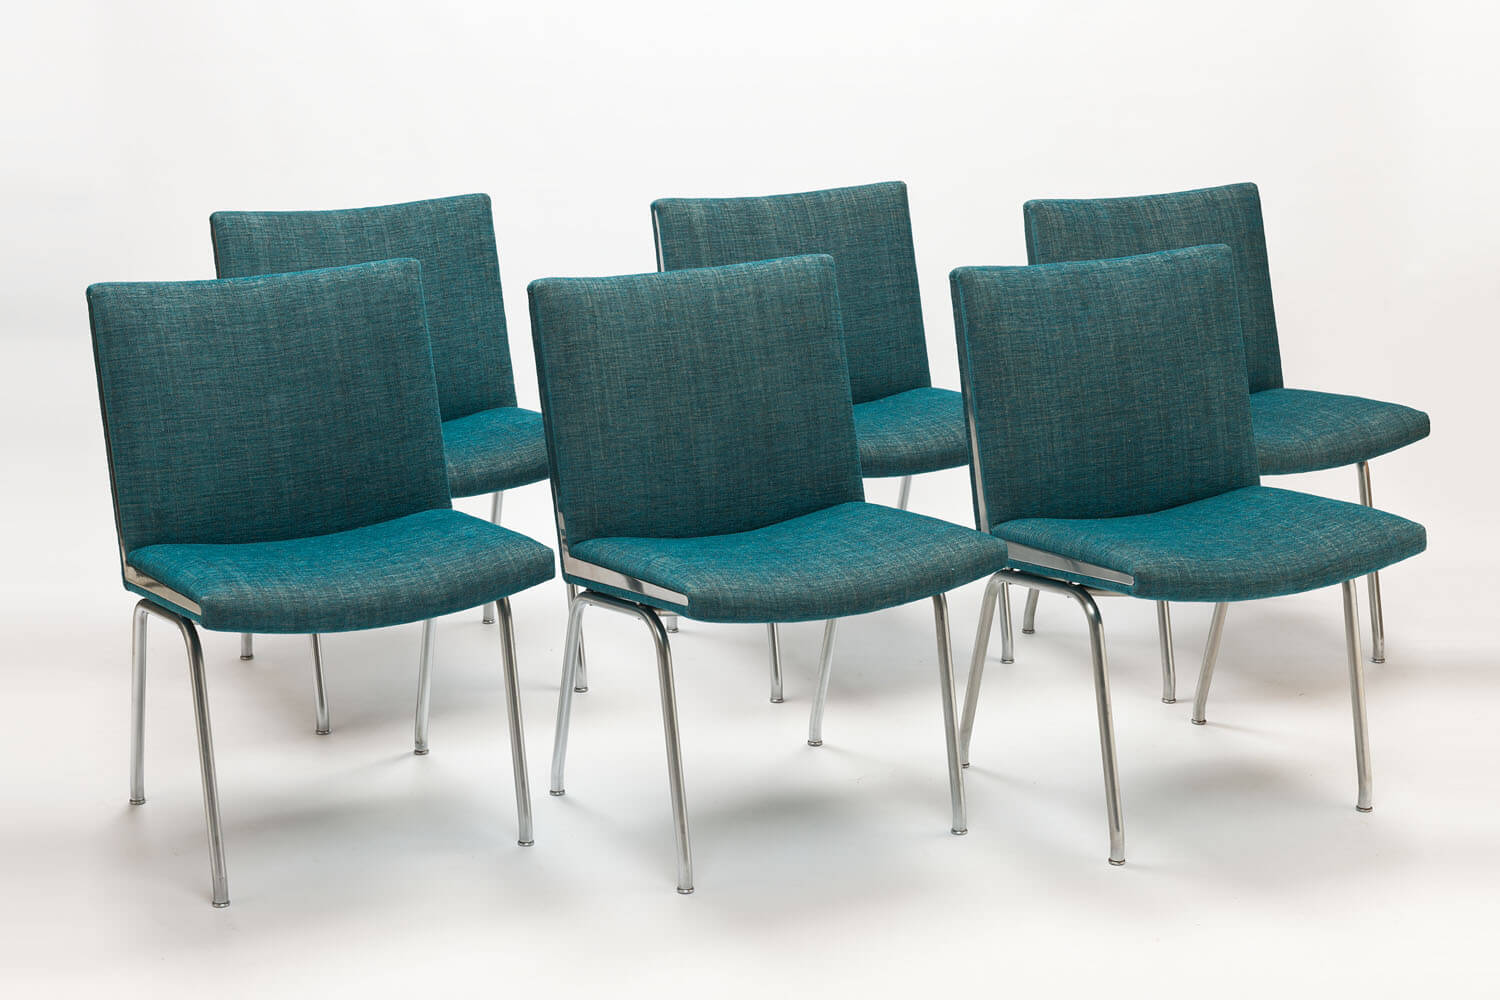 Vintage 'Airport' Chairs